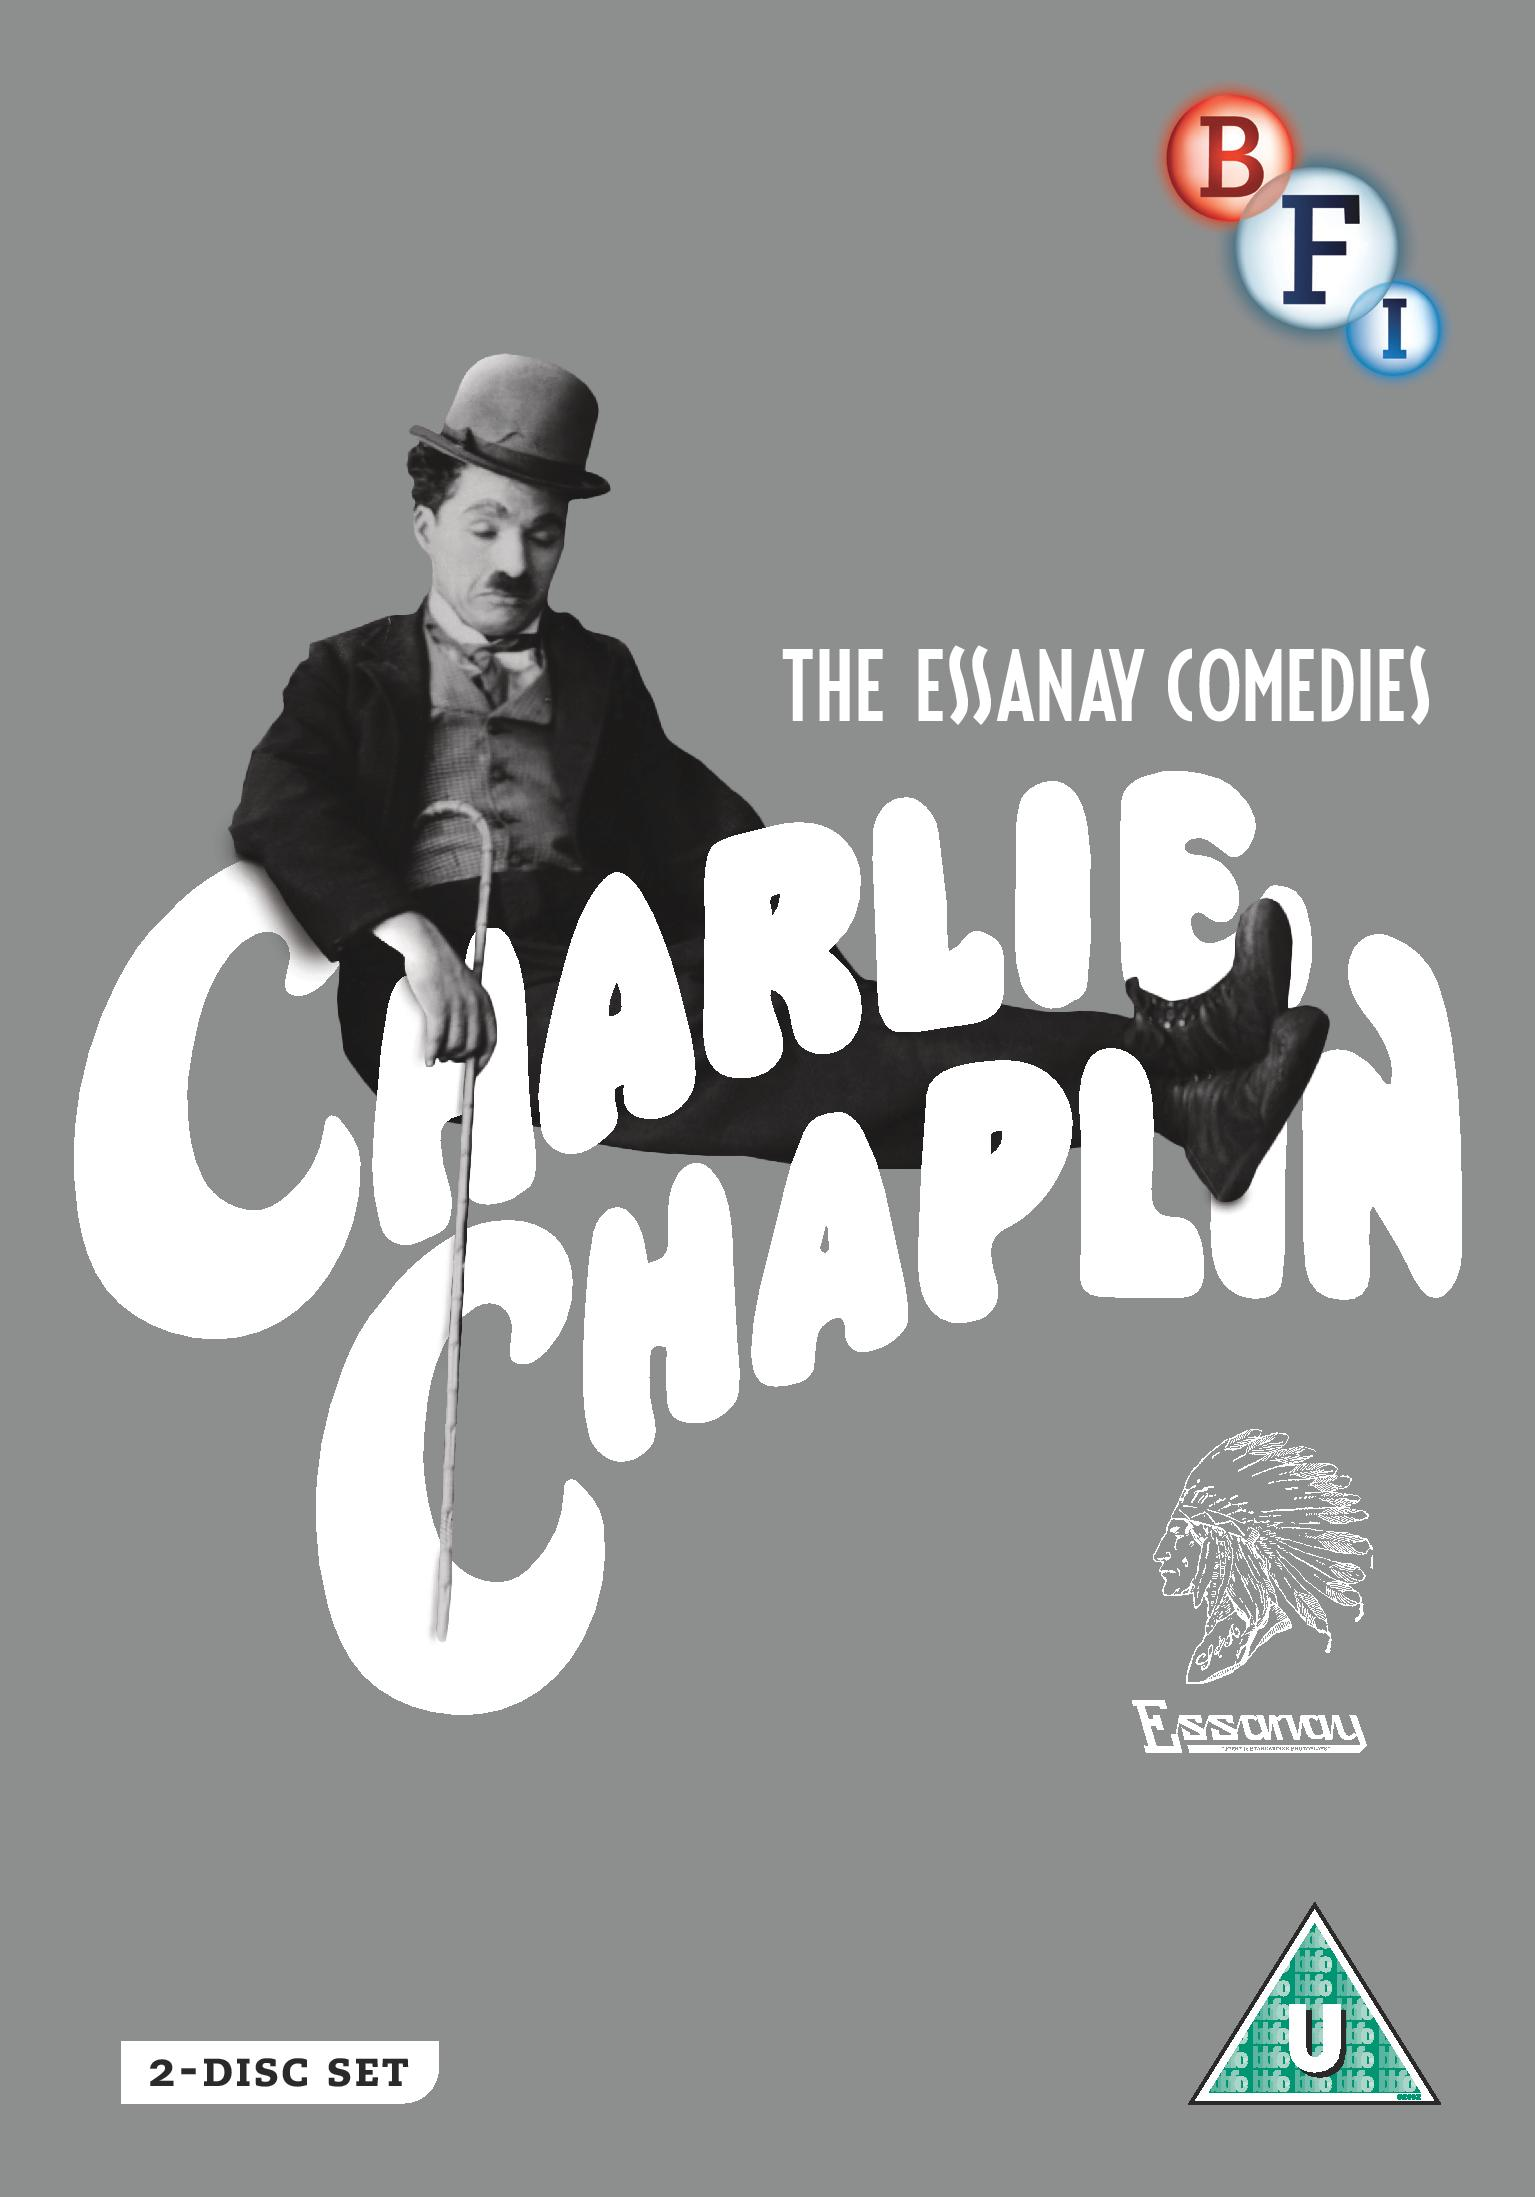 Buy Charlie Chaplin: The Essanay Comedies (DVD)